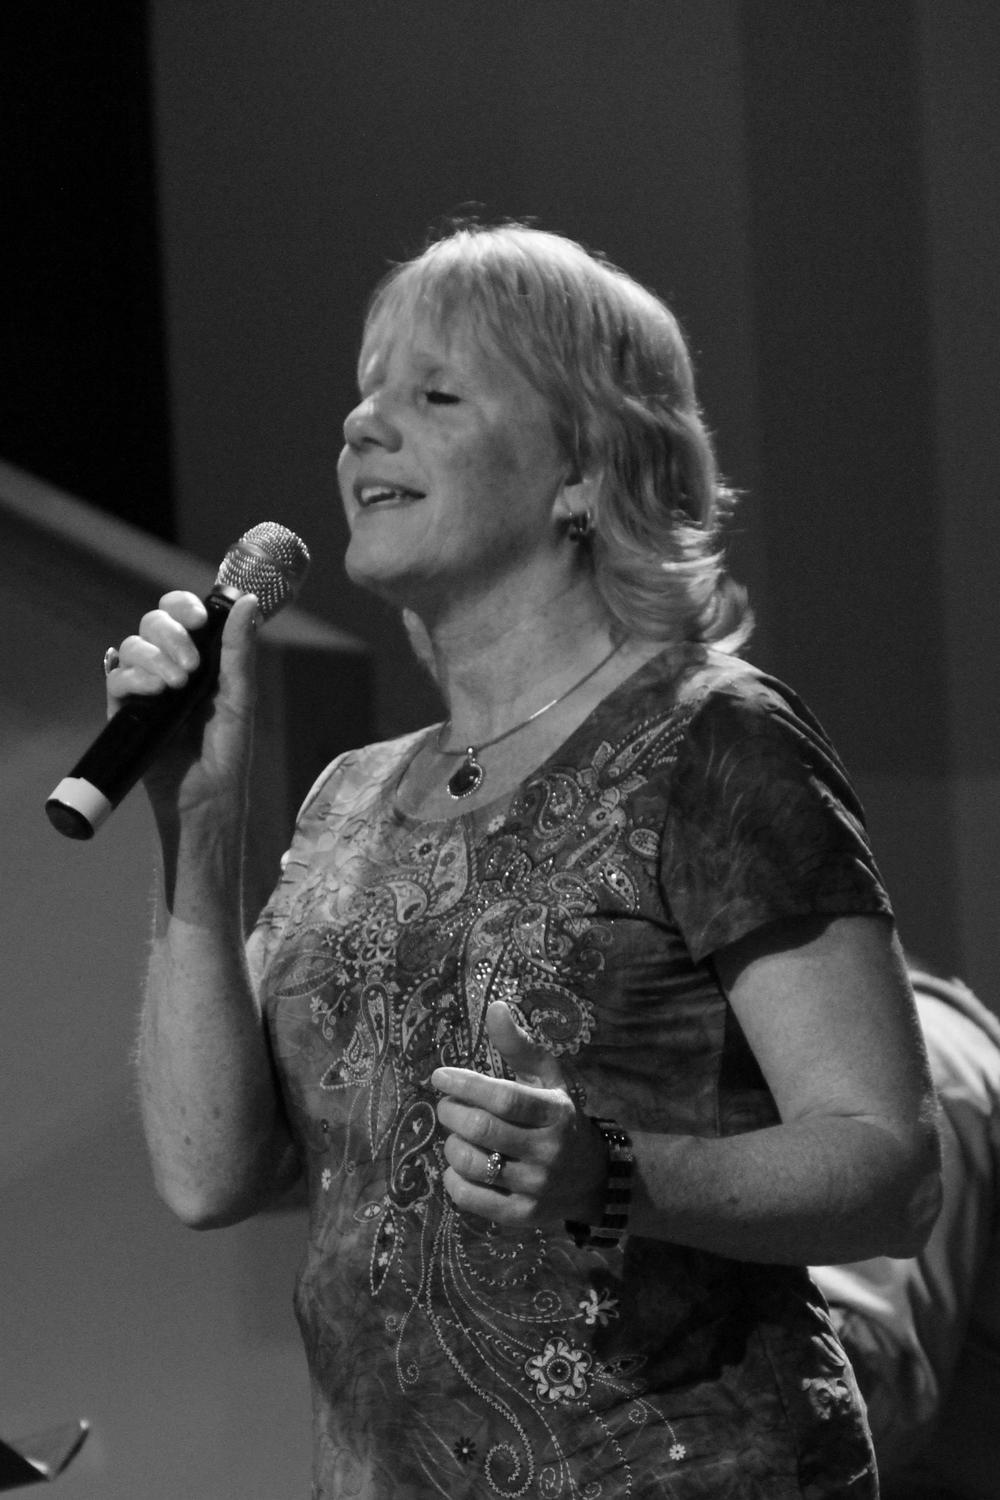 Pam Meinka; Worship Vocal